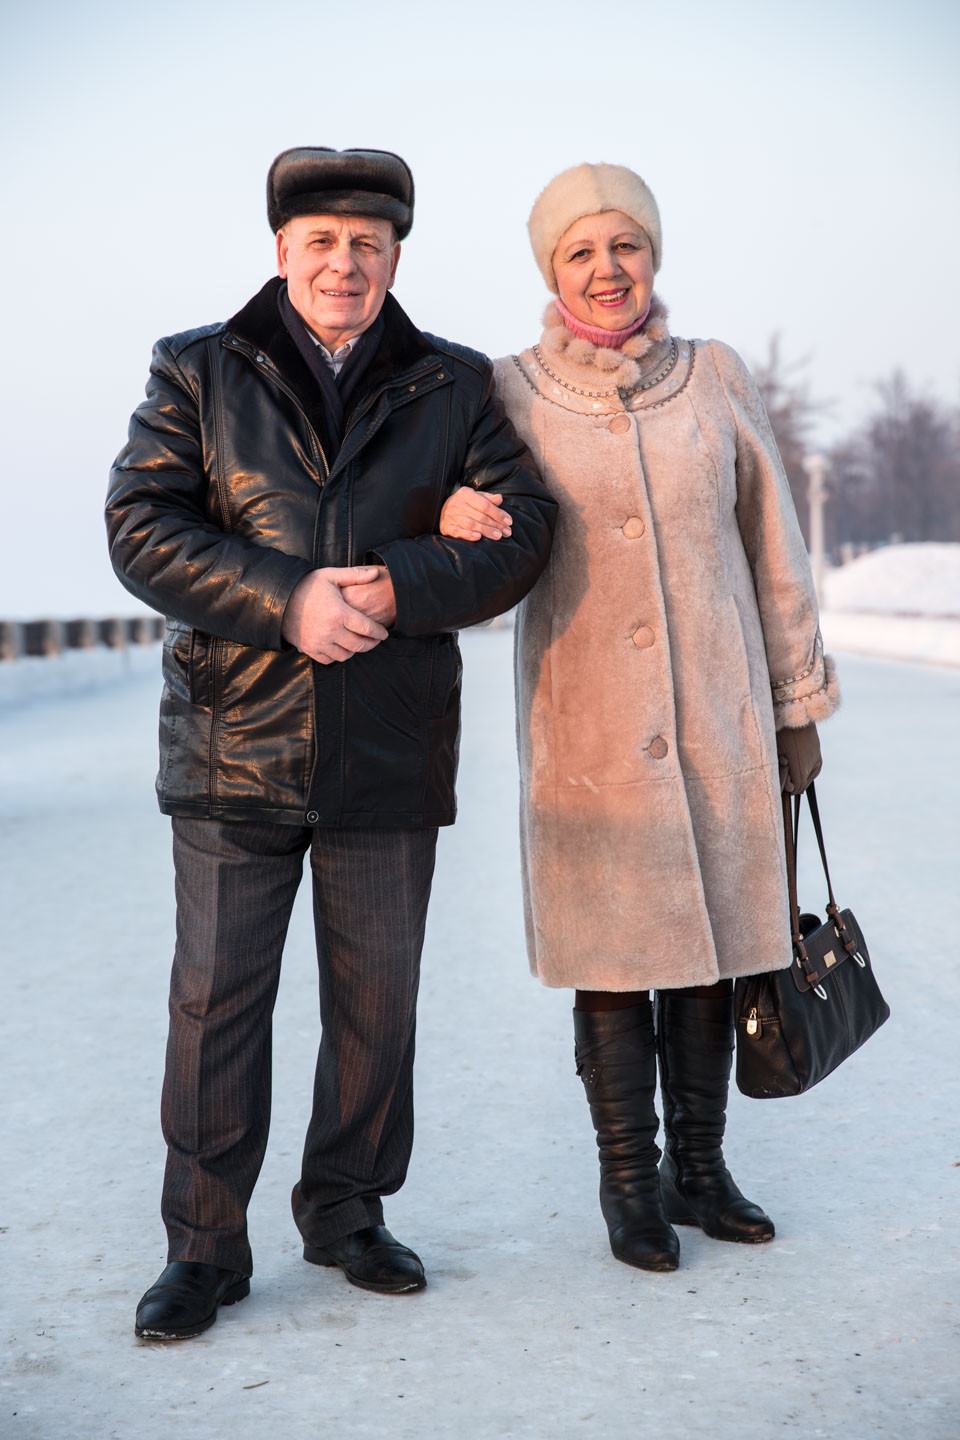 Elena & Mikhail: 45 Years Together